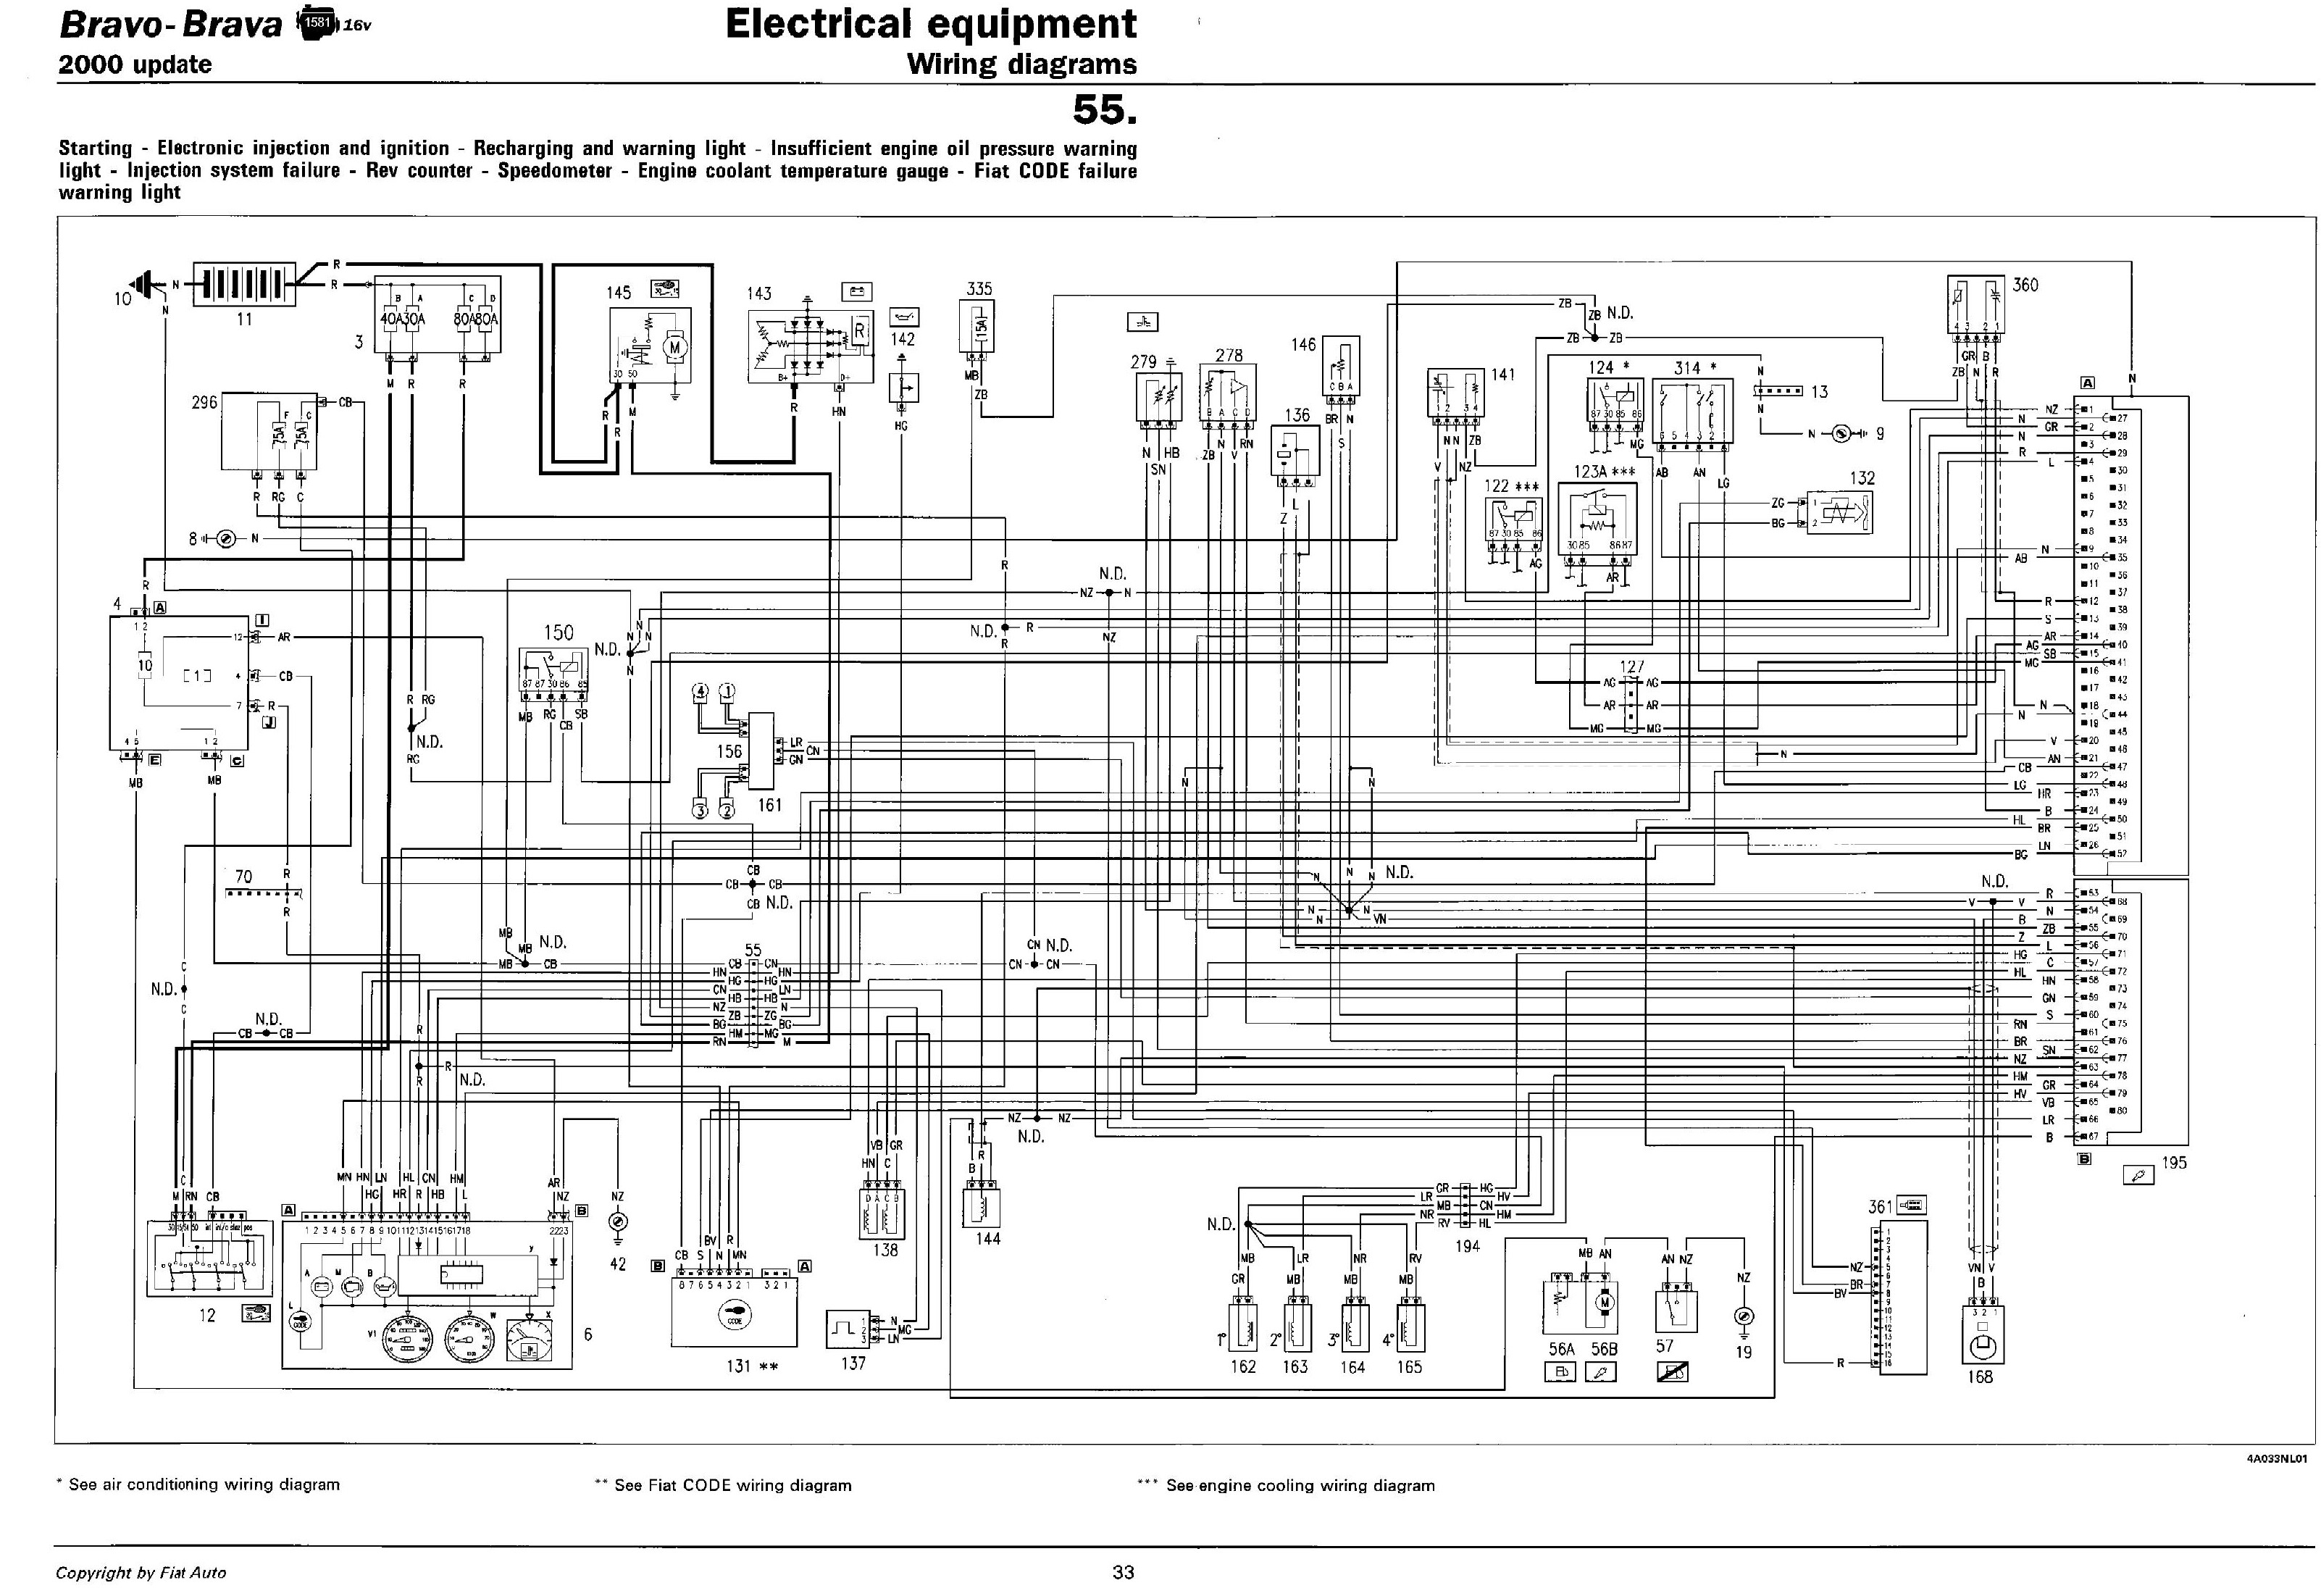 DIAGRAM] Fiat Marea Wiring Diagram FULL Version HD Quality ... on